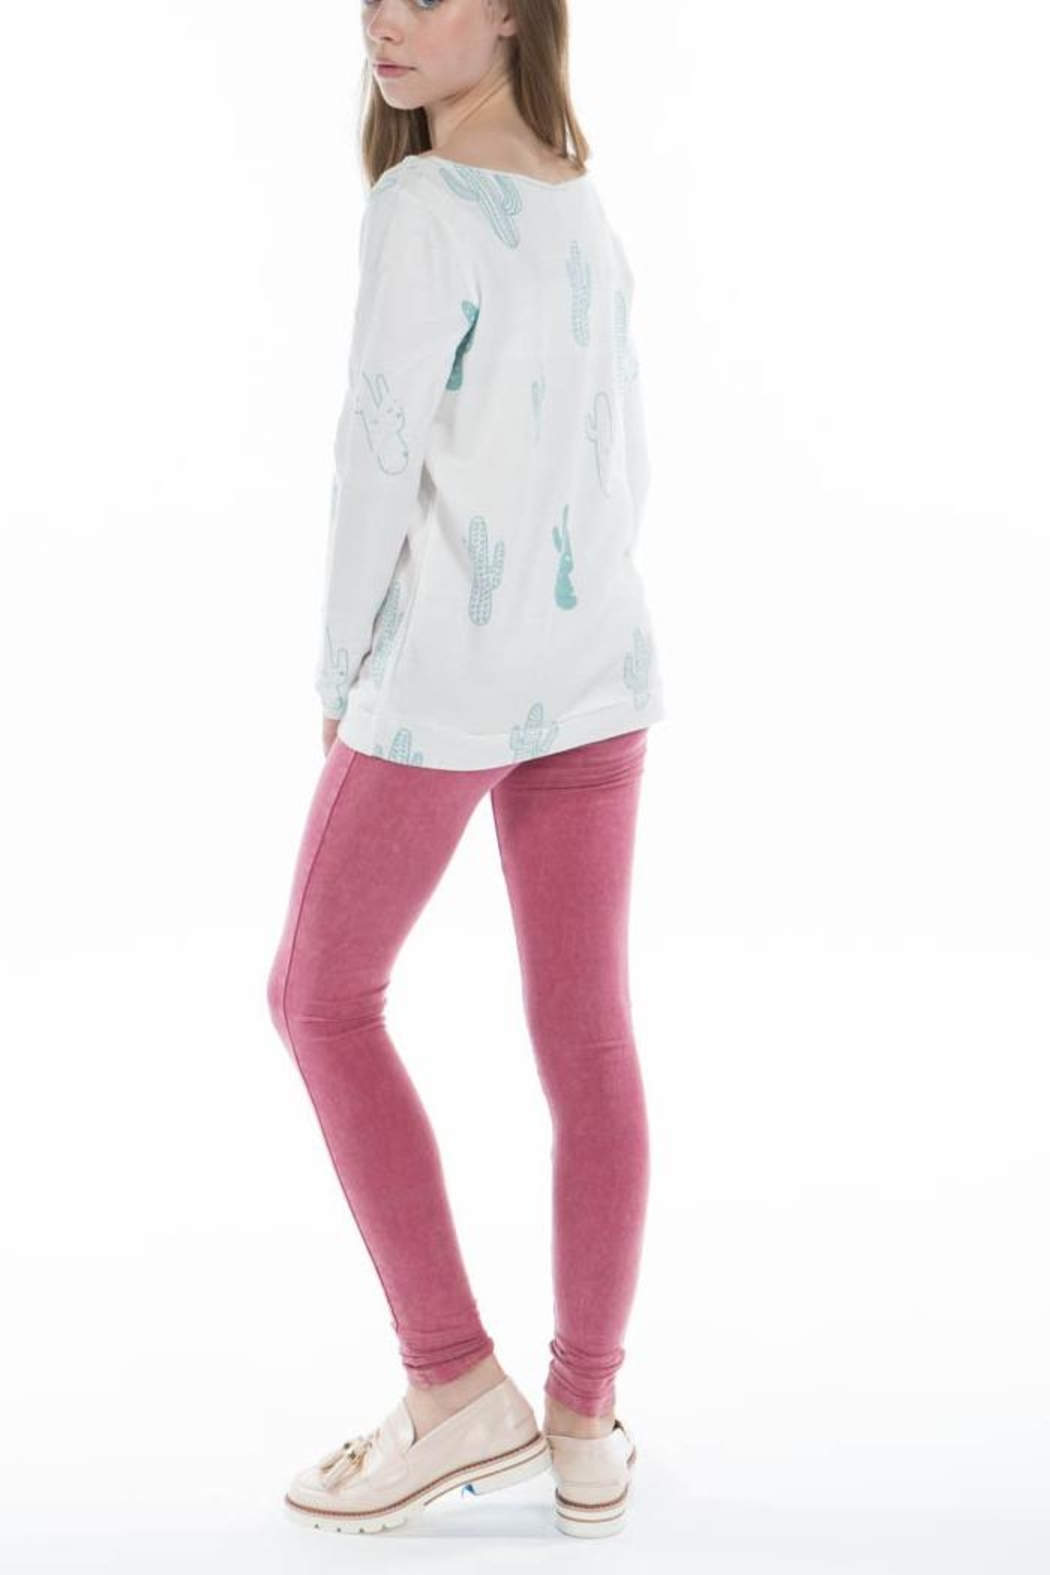 PPLA Cactus Slouch-Knit Top - Front Full Image